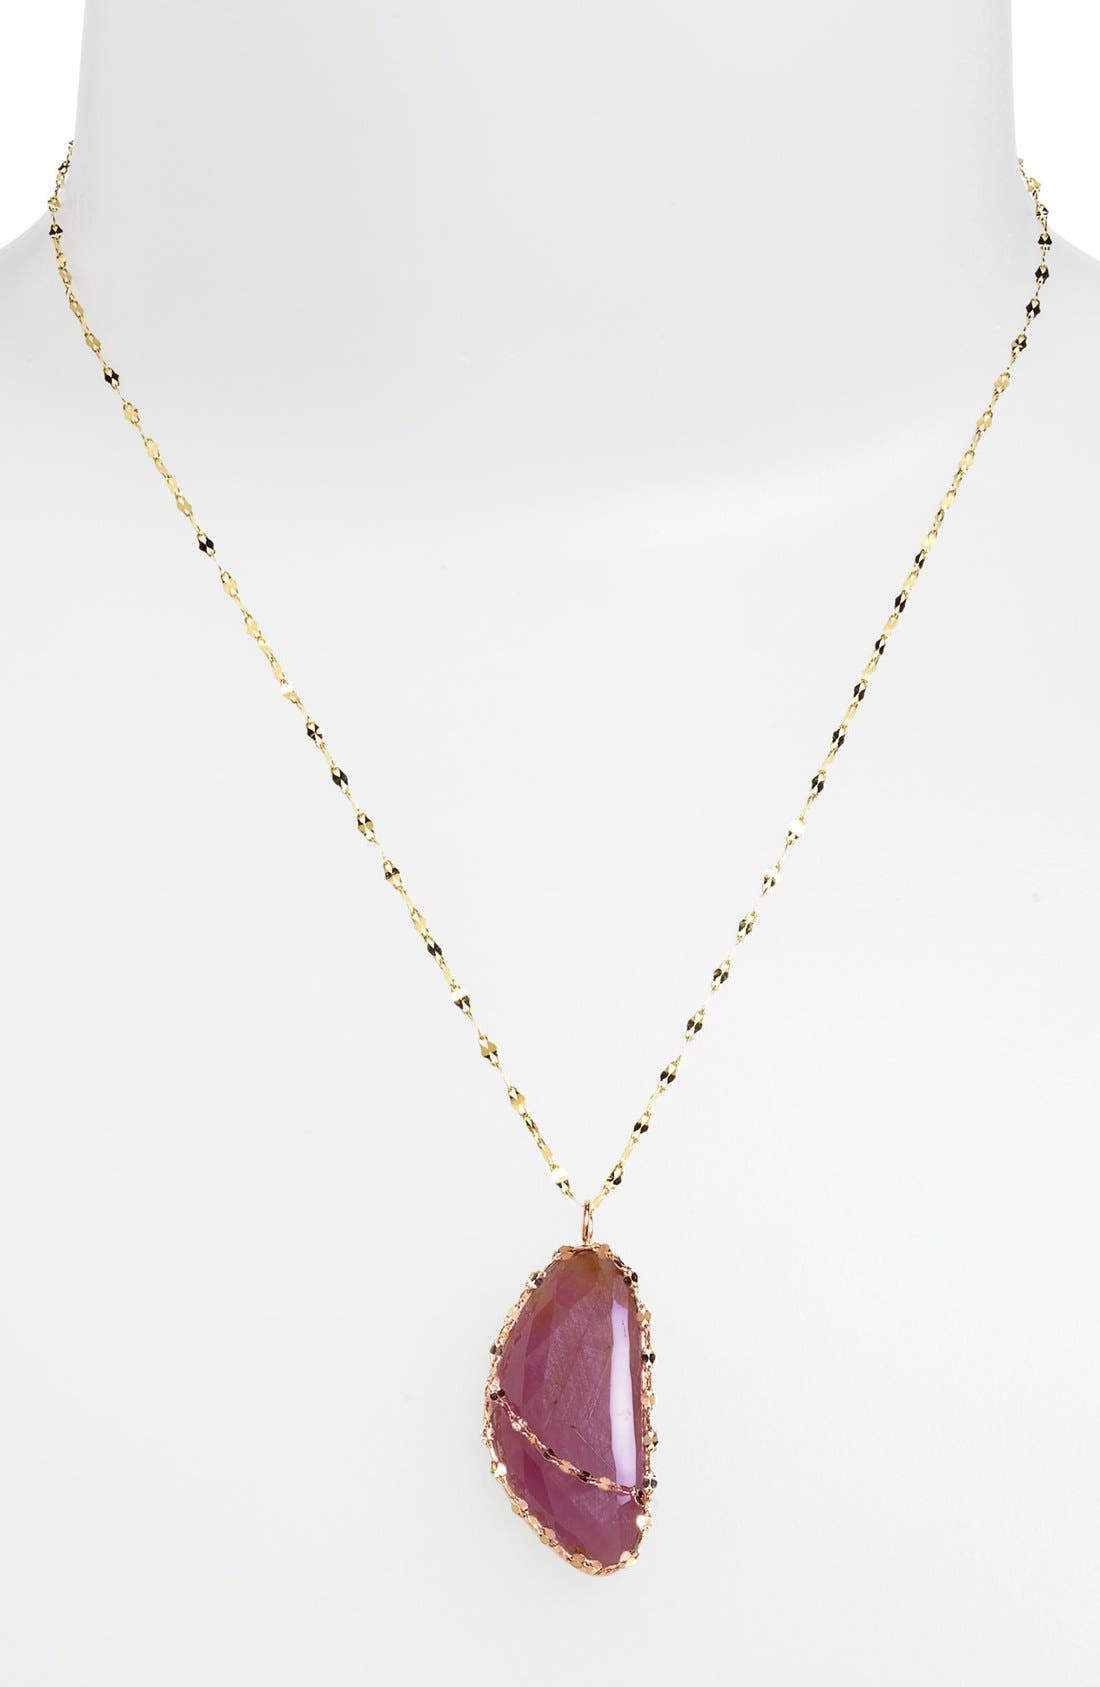 Main Image - Lana Jewelry 'Stone Gold - Eden' Pendant Necklace